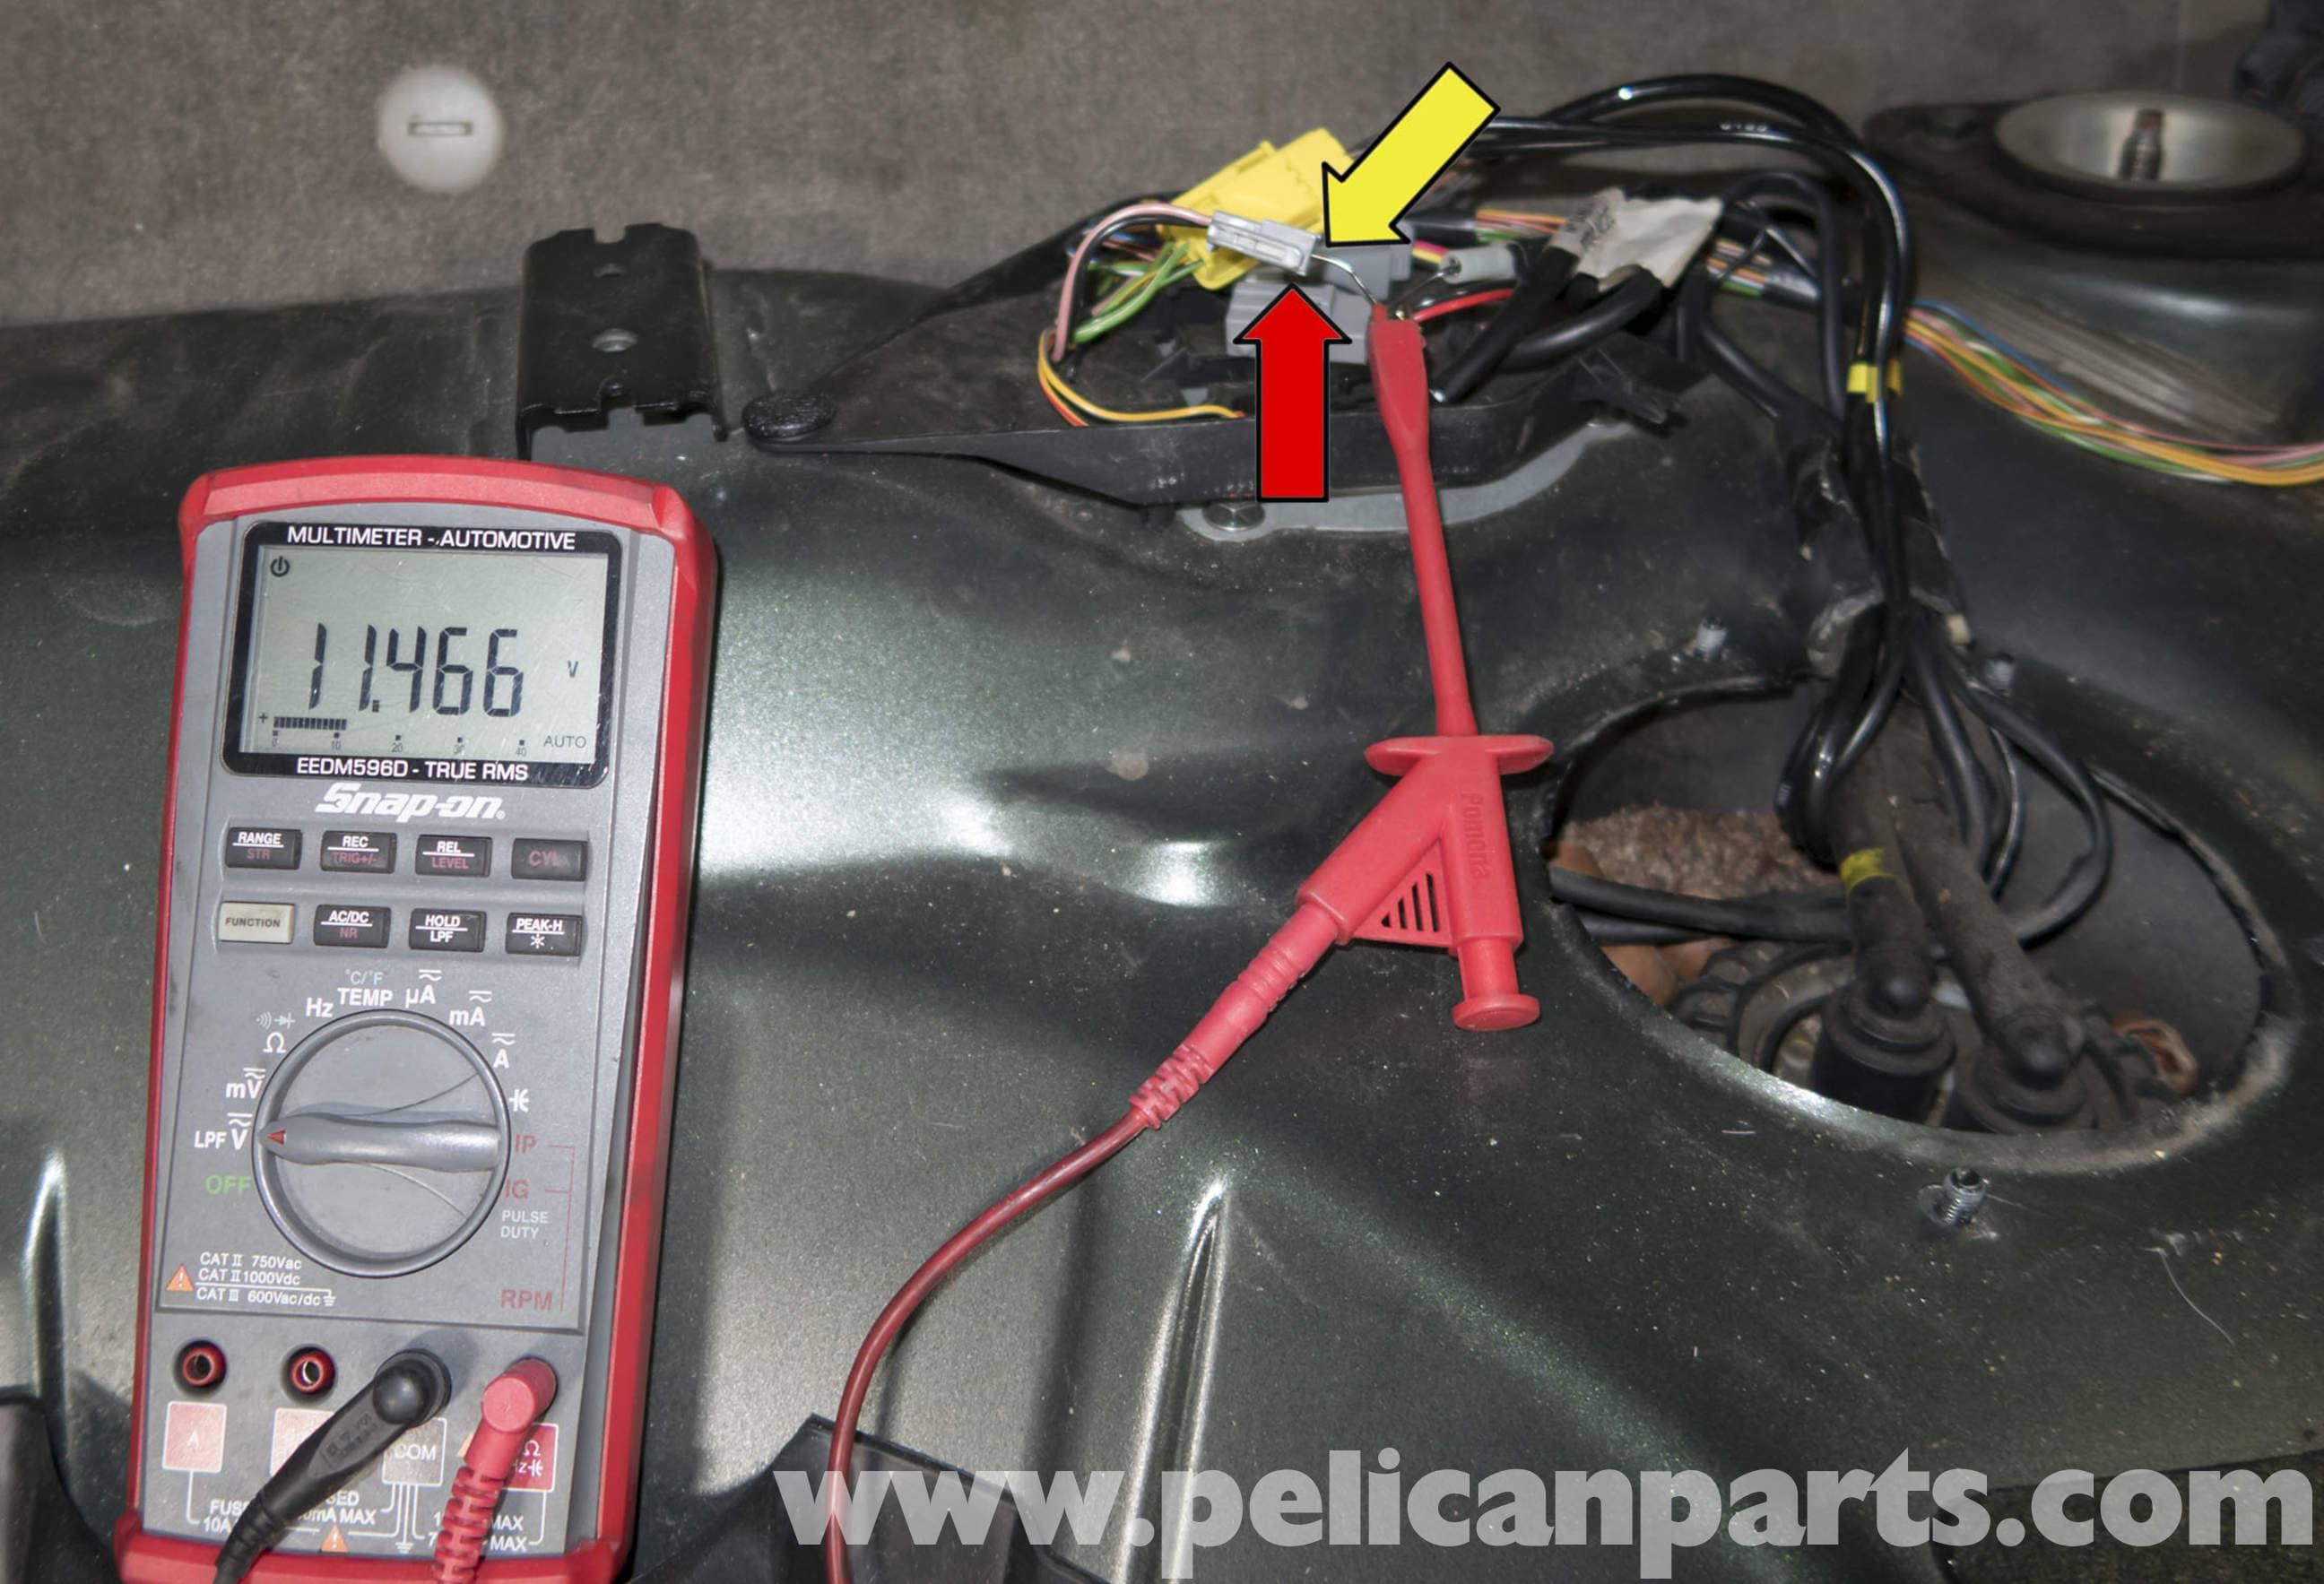 pic11 volvo v70 fuel pump replacement (1998 2007) pelican parts diy Ford Fuel Pump Wiring Diagram at reclaimingppi.co